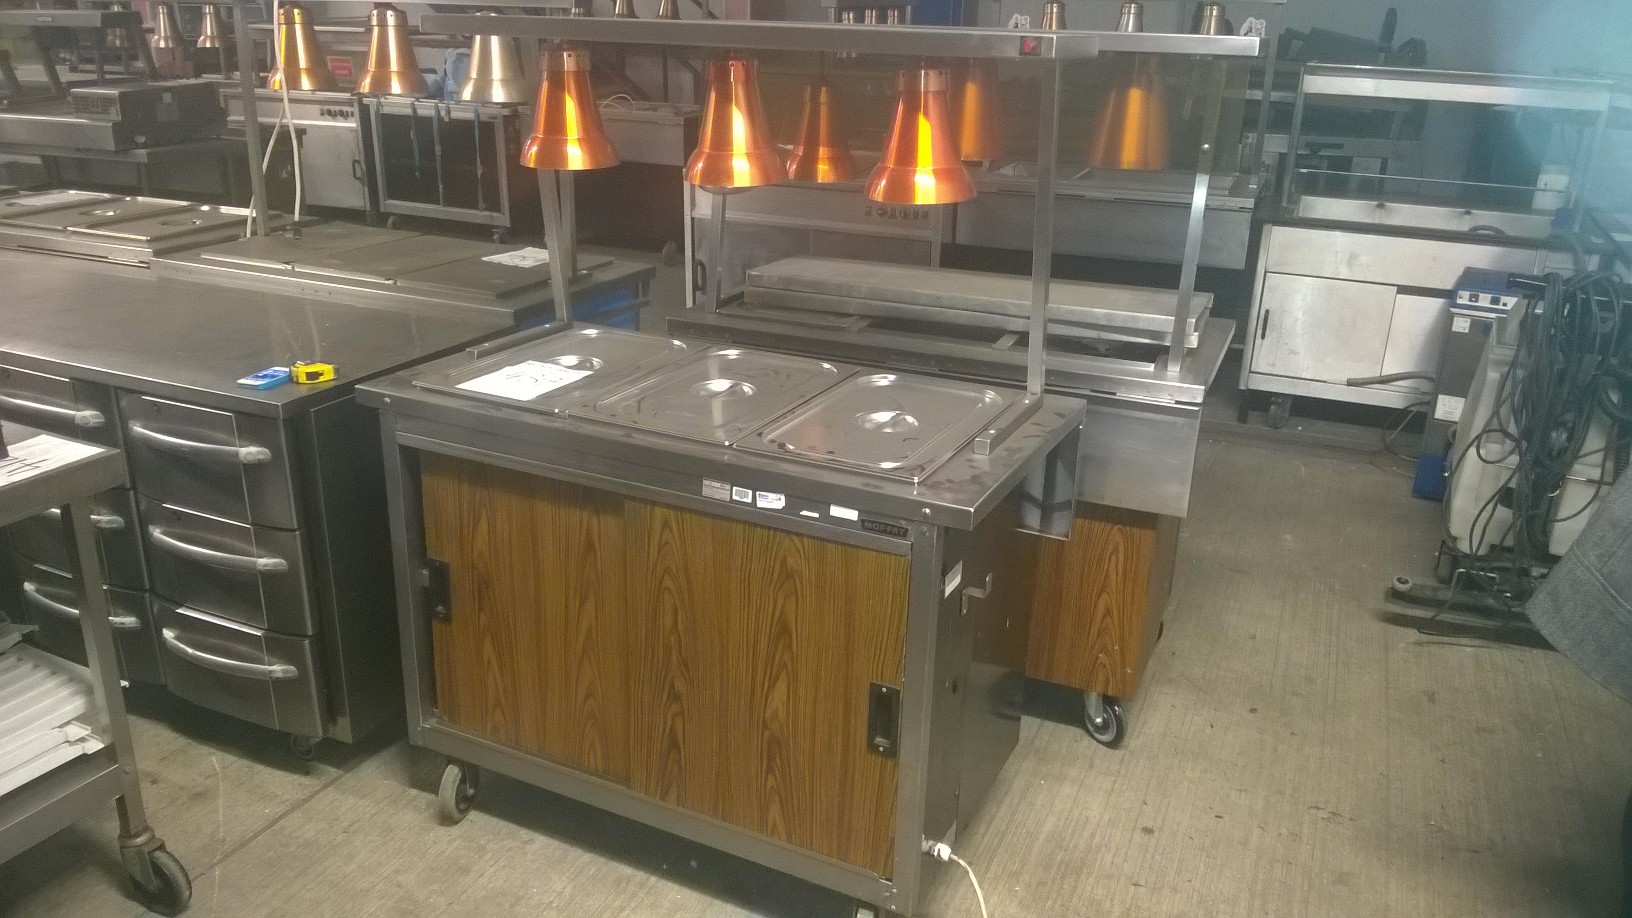 Lot 4 - Moffat V3 Heated display cabinet Heated display cabinets with heat lamps (5) 1200 x 640/880 x 1530mm